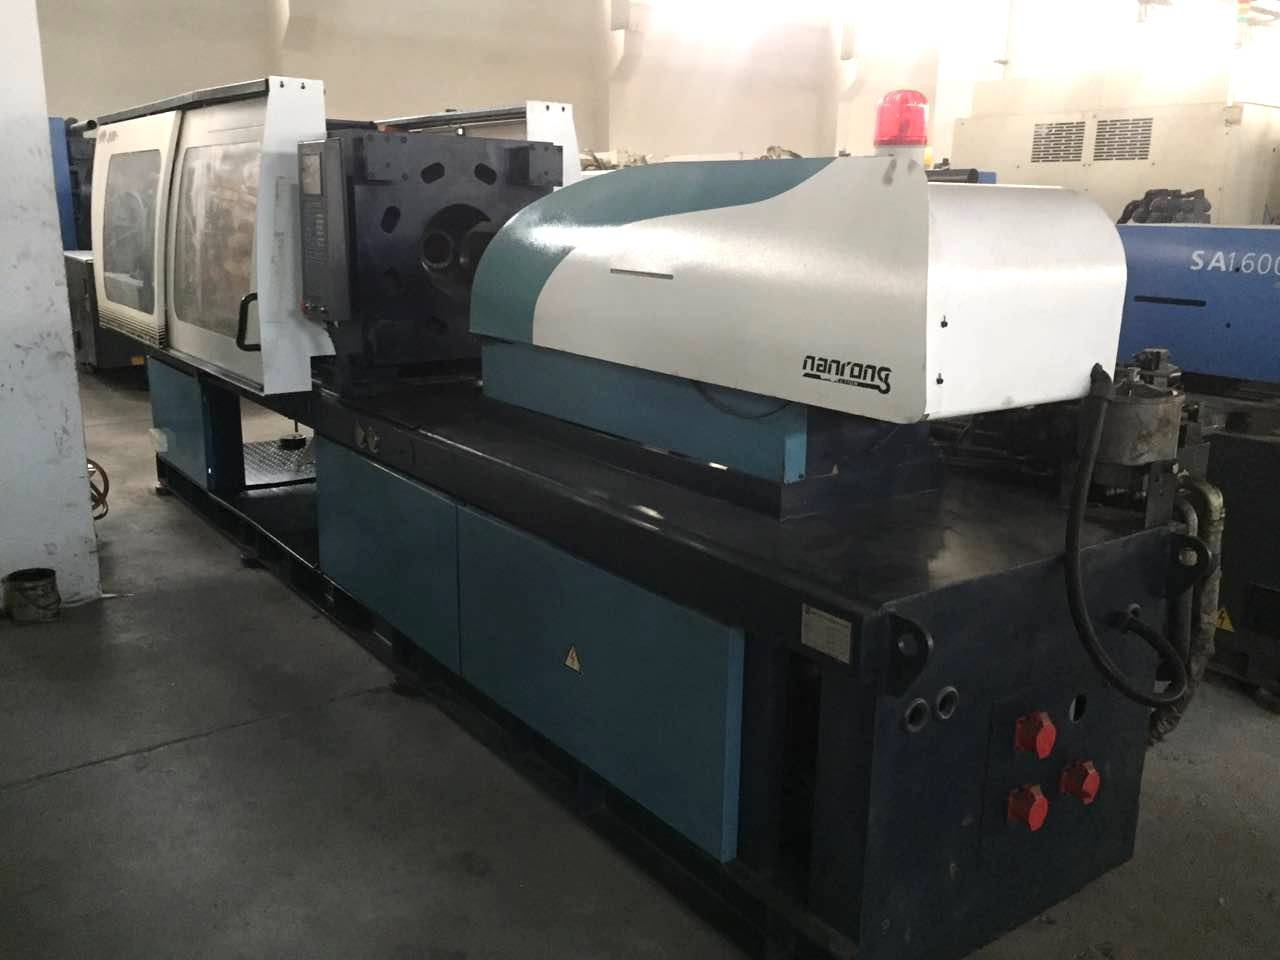 Nanrong 250t used Injection Molding Machine